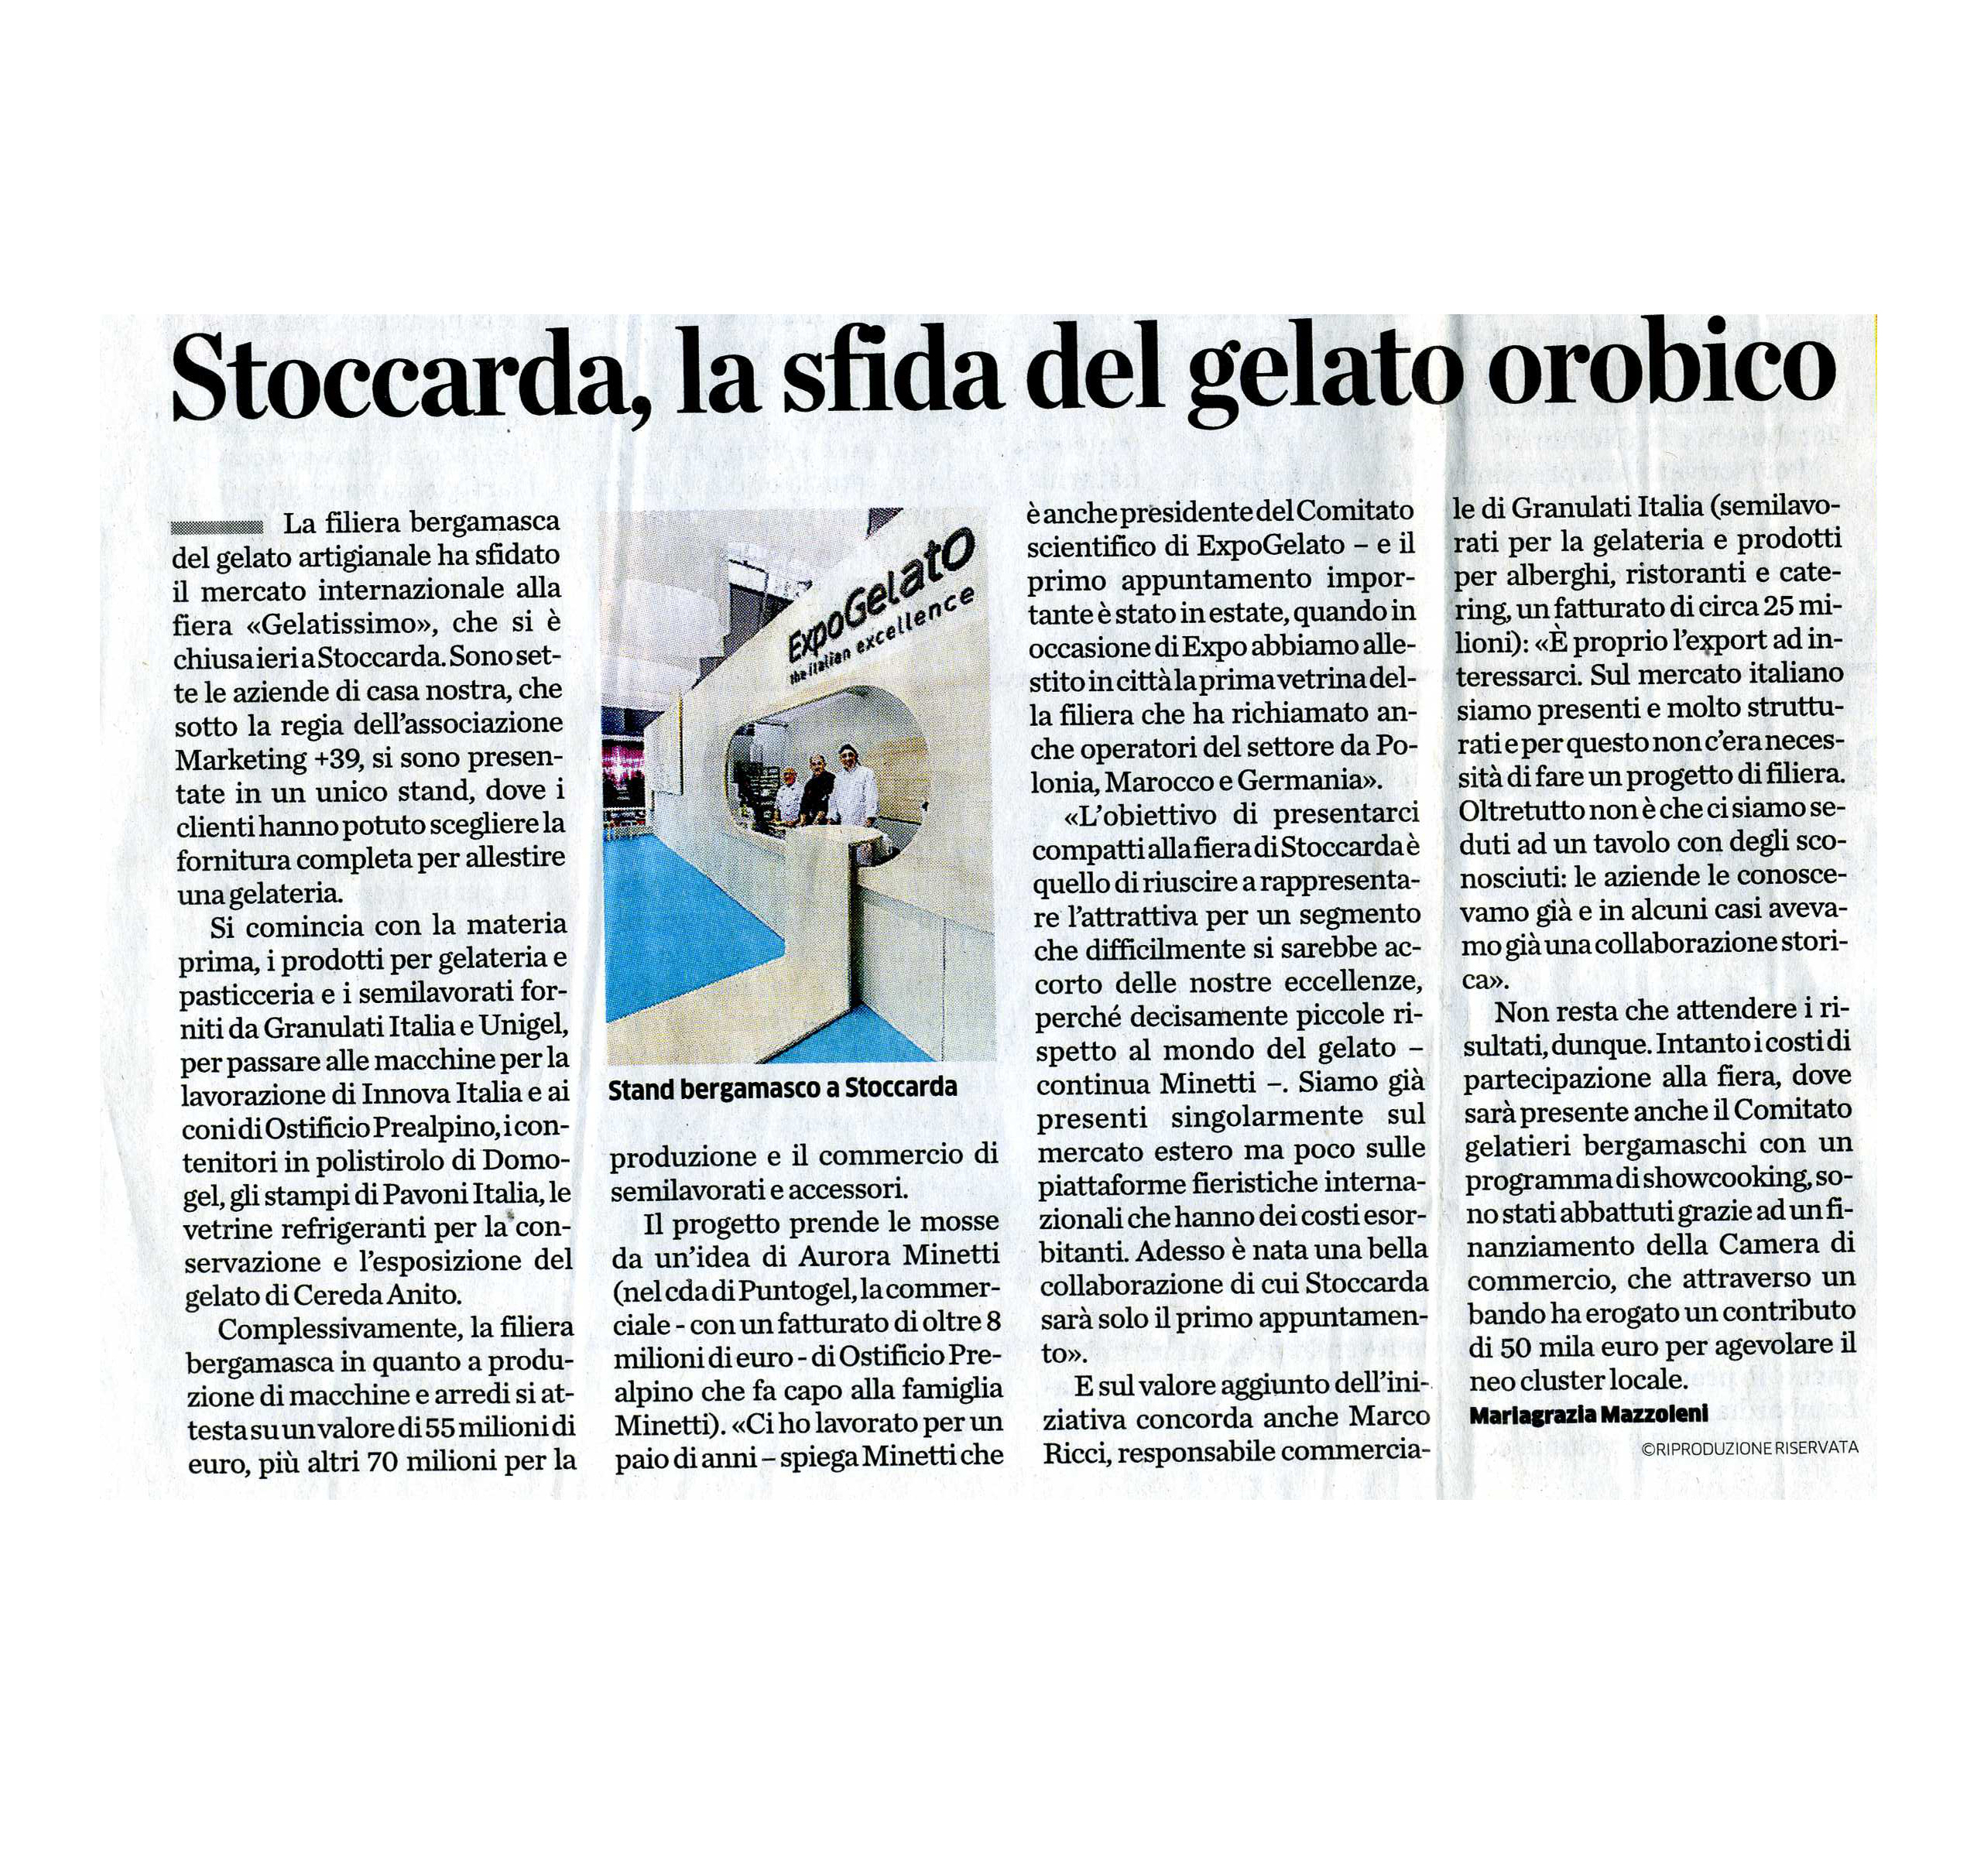 pag giornale 2